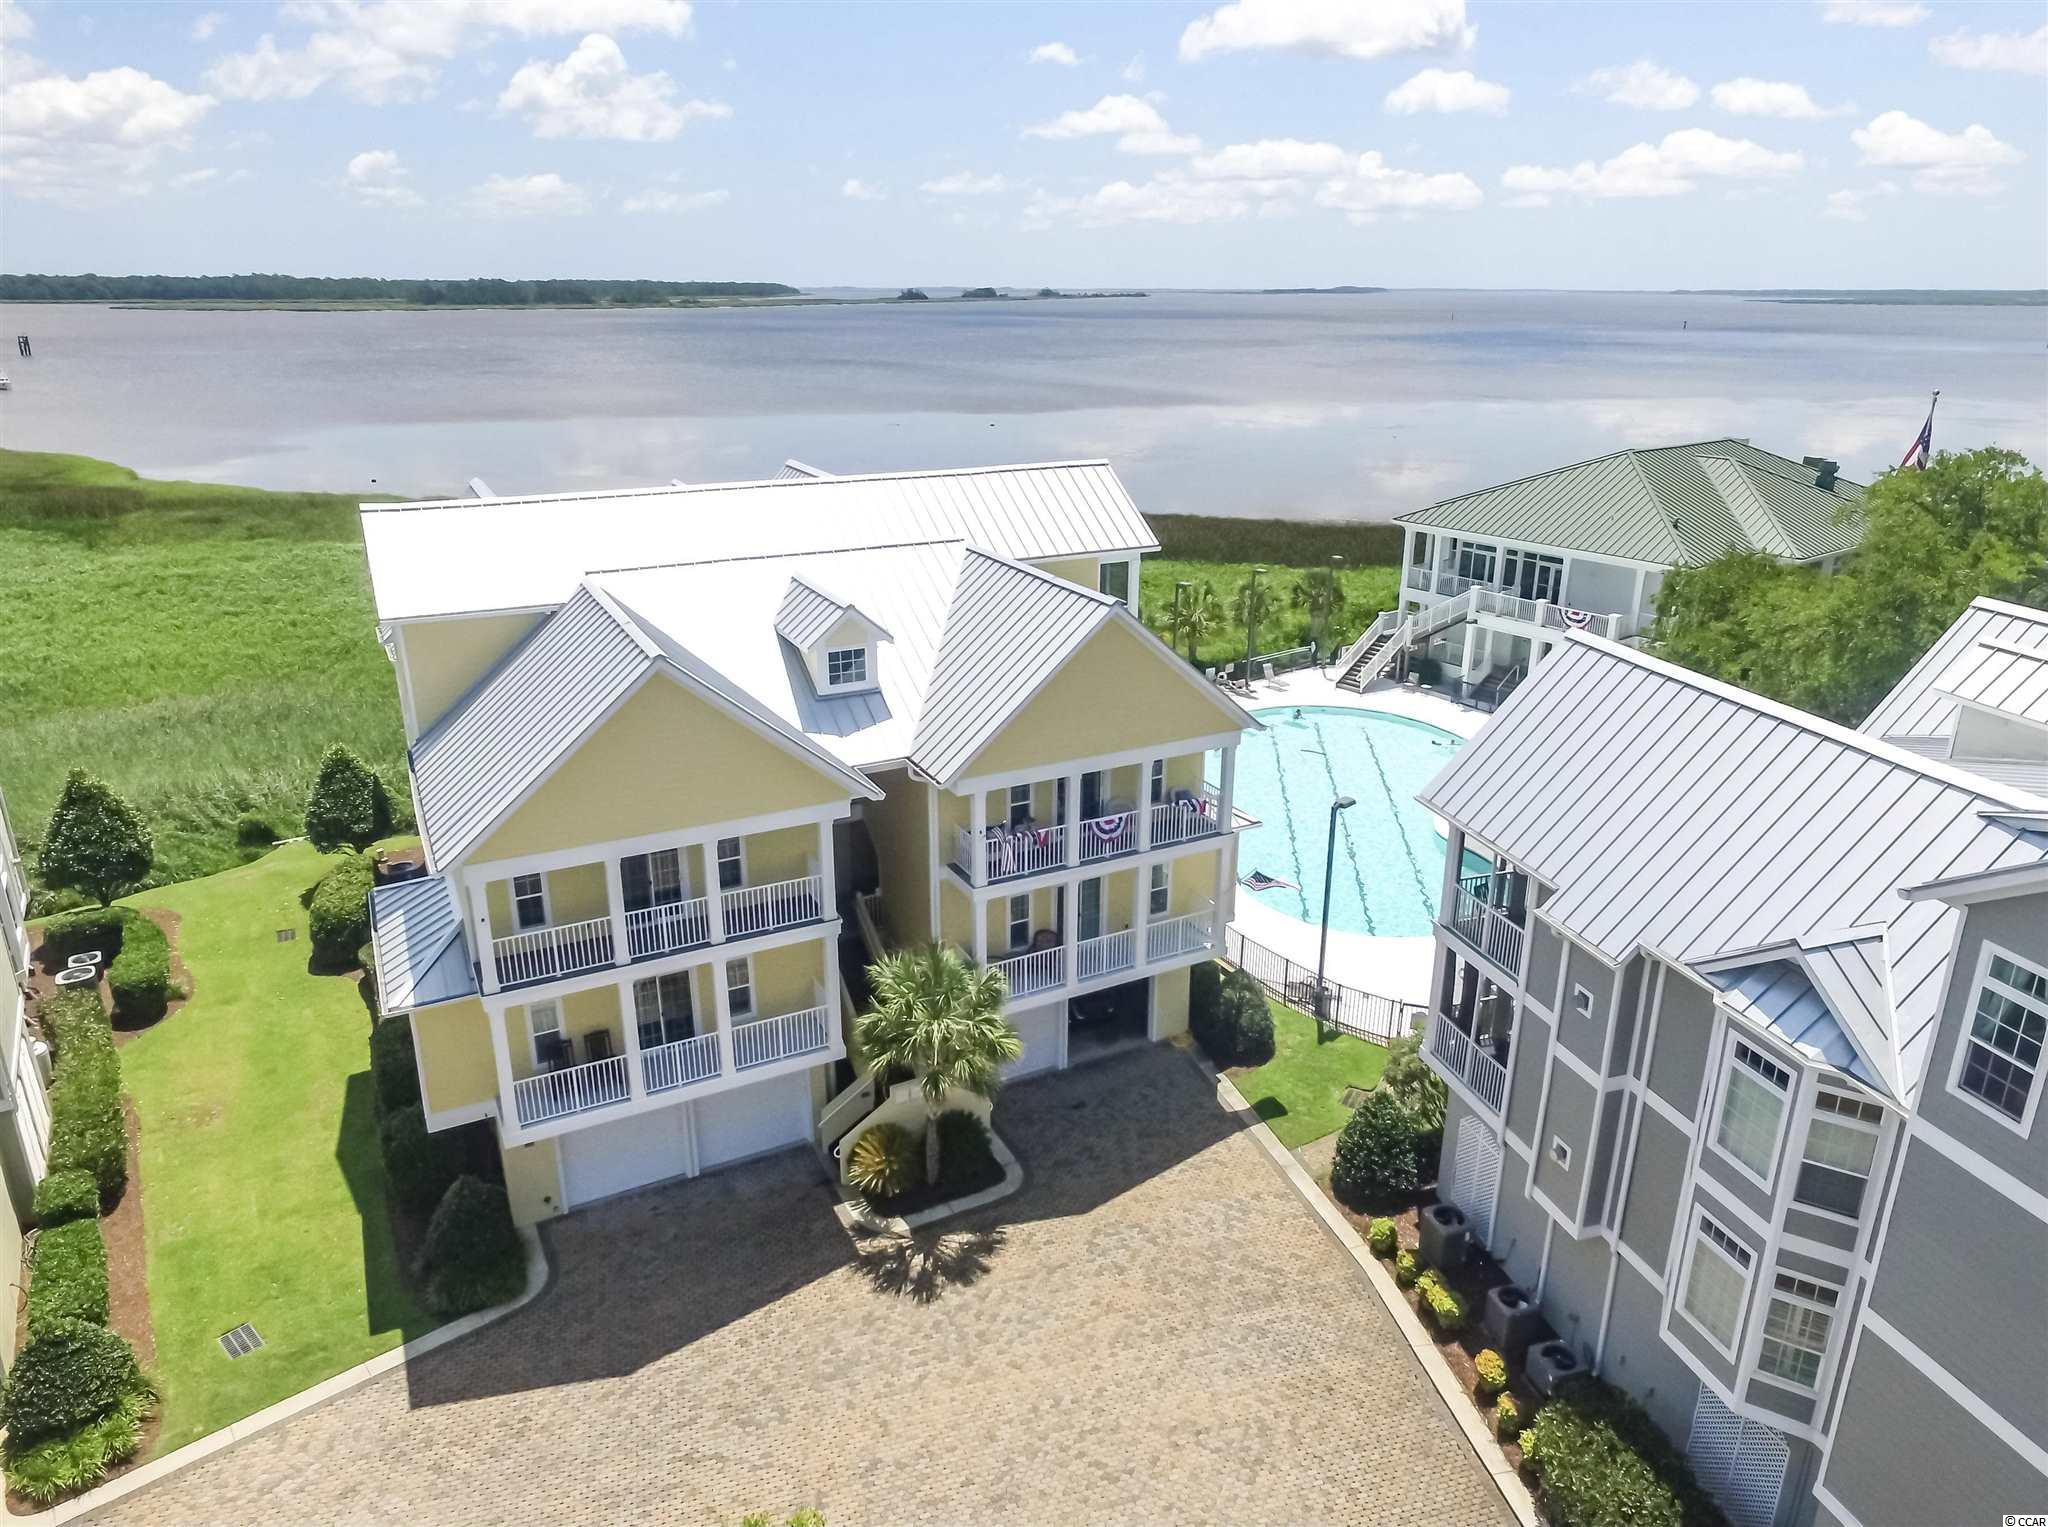 Welcome to Marina Village in Georgetown's beautiful Belle Isle Yacht Club community. Don't miss this well-appointed 3 bed / 2 bath waterfront unit with panoramic views of the Intracoastal Waterway and Winyah Bay. Enjoy sunrises over the bay from your screened porch and watch the boats pass by throughout the day. All bedrooms are located on one level and the unit is accessible via stairs or elevator. The kitchen features high quality cabinetry, stainless appliances and granite counter tops. There's also a wet bar in the living area for mixing an evening cocktail or entertaining your guests. The master bedroom overlooks Winyah Bay and has a spacious bath with dual sinks, a tiled shower and a jet tub. Owners will also appreciate the huge garage space with plenty of parking and storage. Other features include a gas fireplace, plantation shutters, crown molding and hardwood flooring in the living room and master bedroom. Community amenities include the yacht club, swimming pool, a private beach house on Pawleys Island, tennis courts and a full service marina that is now taking reservations for boat slips. This property would make a lovely full-time residence or an ideal weekend retreat for fishermen and boaters. Book your showing today to view this wonderful waterfront property.